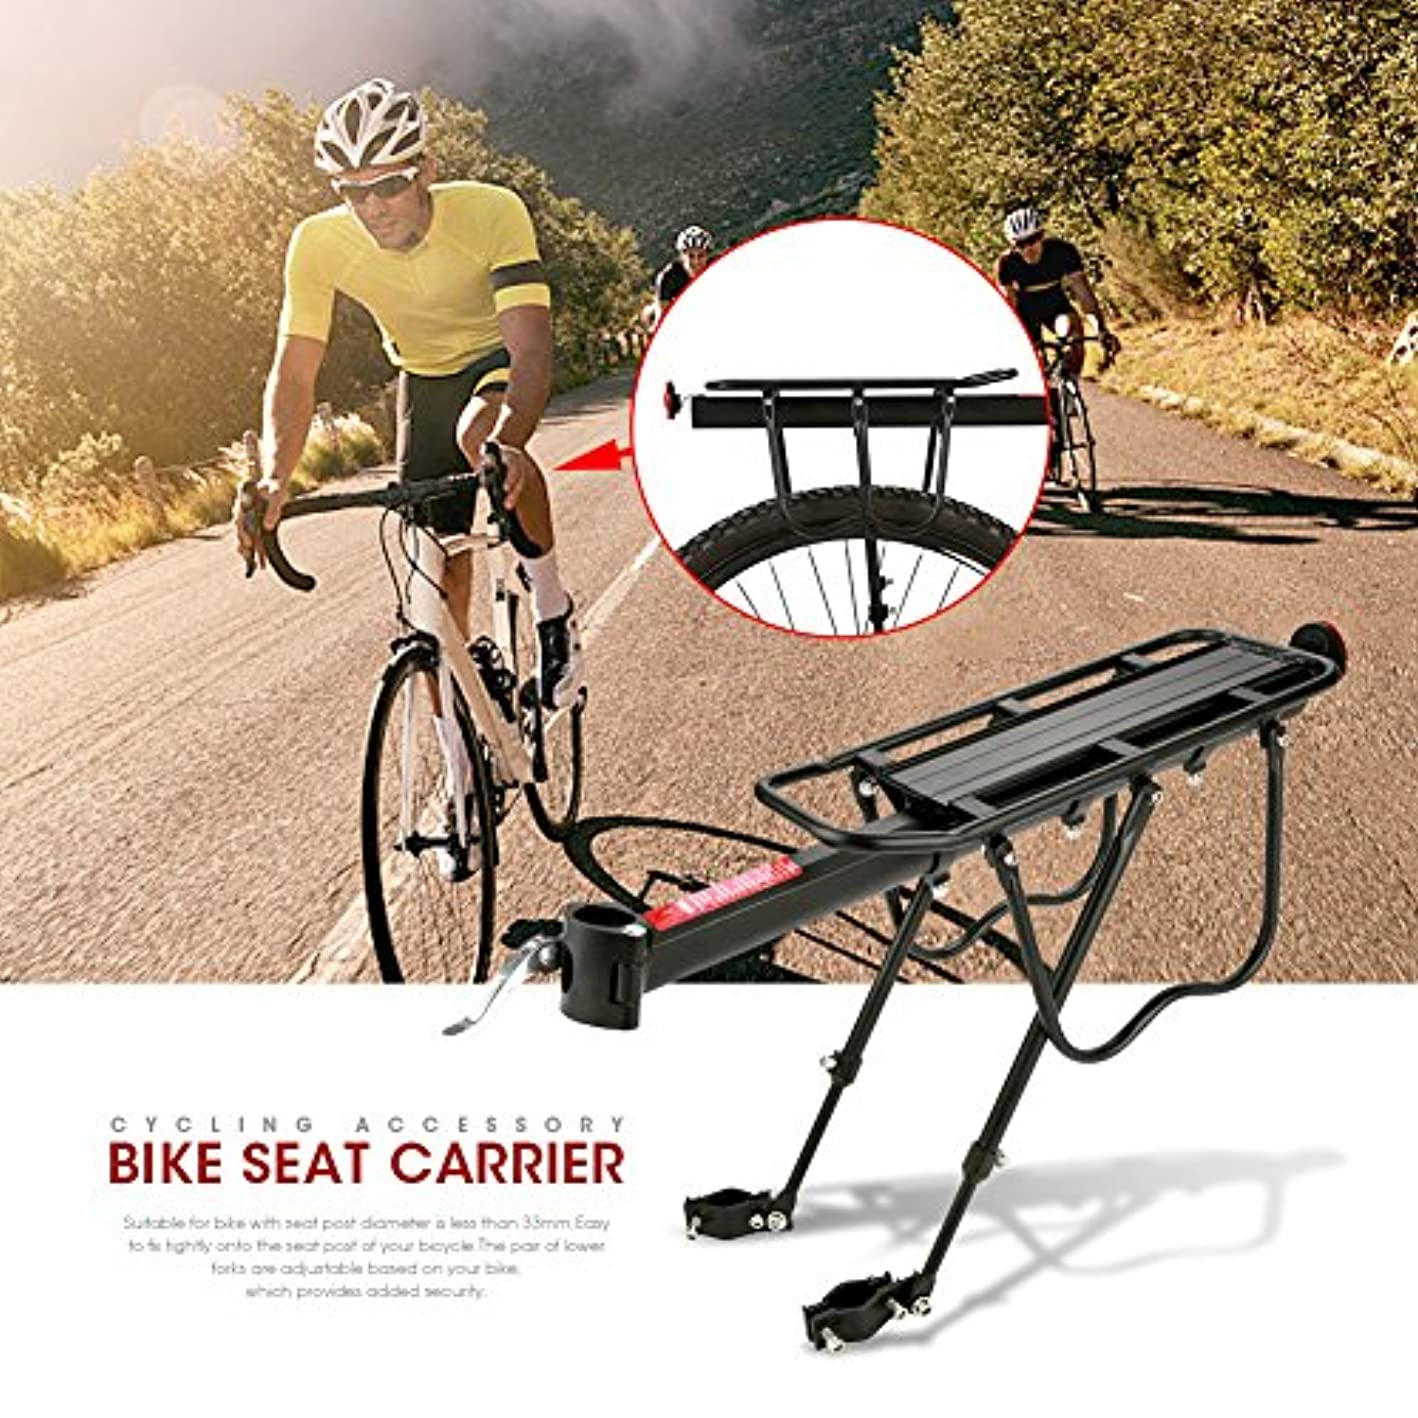 GOTOTOP Strong Alloy Rear Bicycle Pannier Bag Luggage Carrier Rack Bike Cycle Seat Post Black